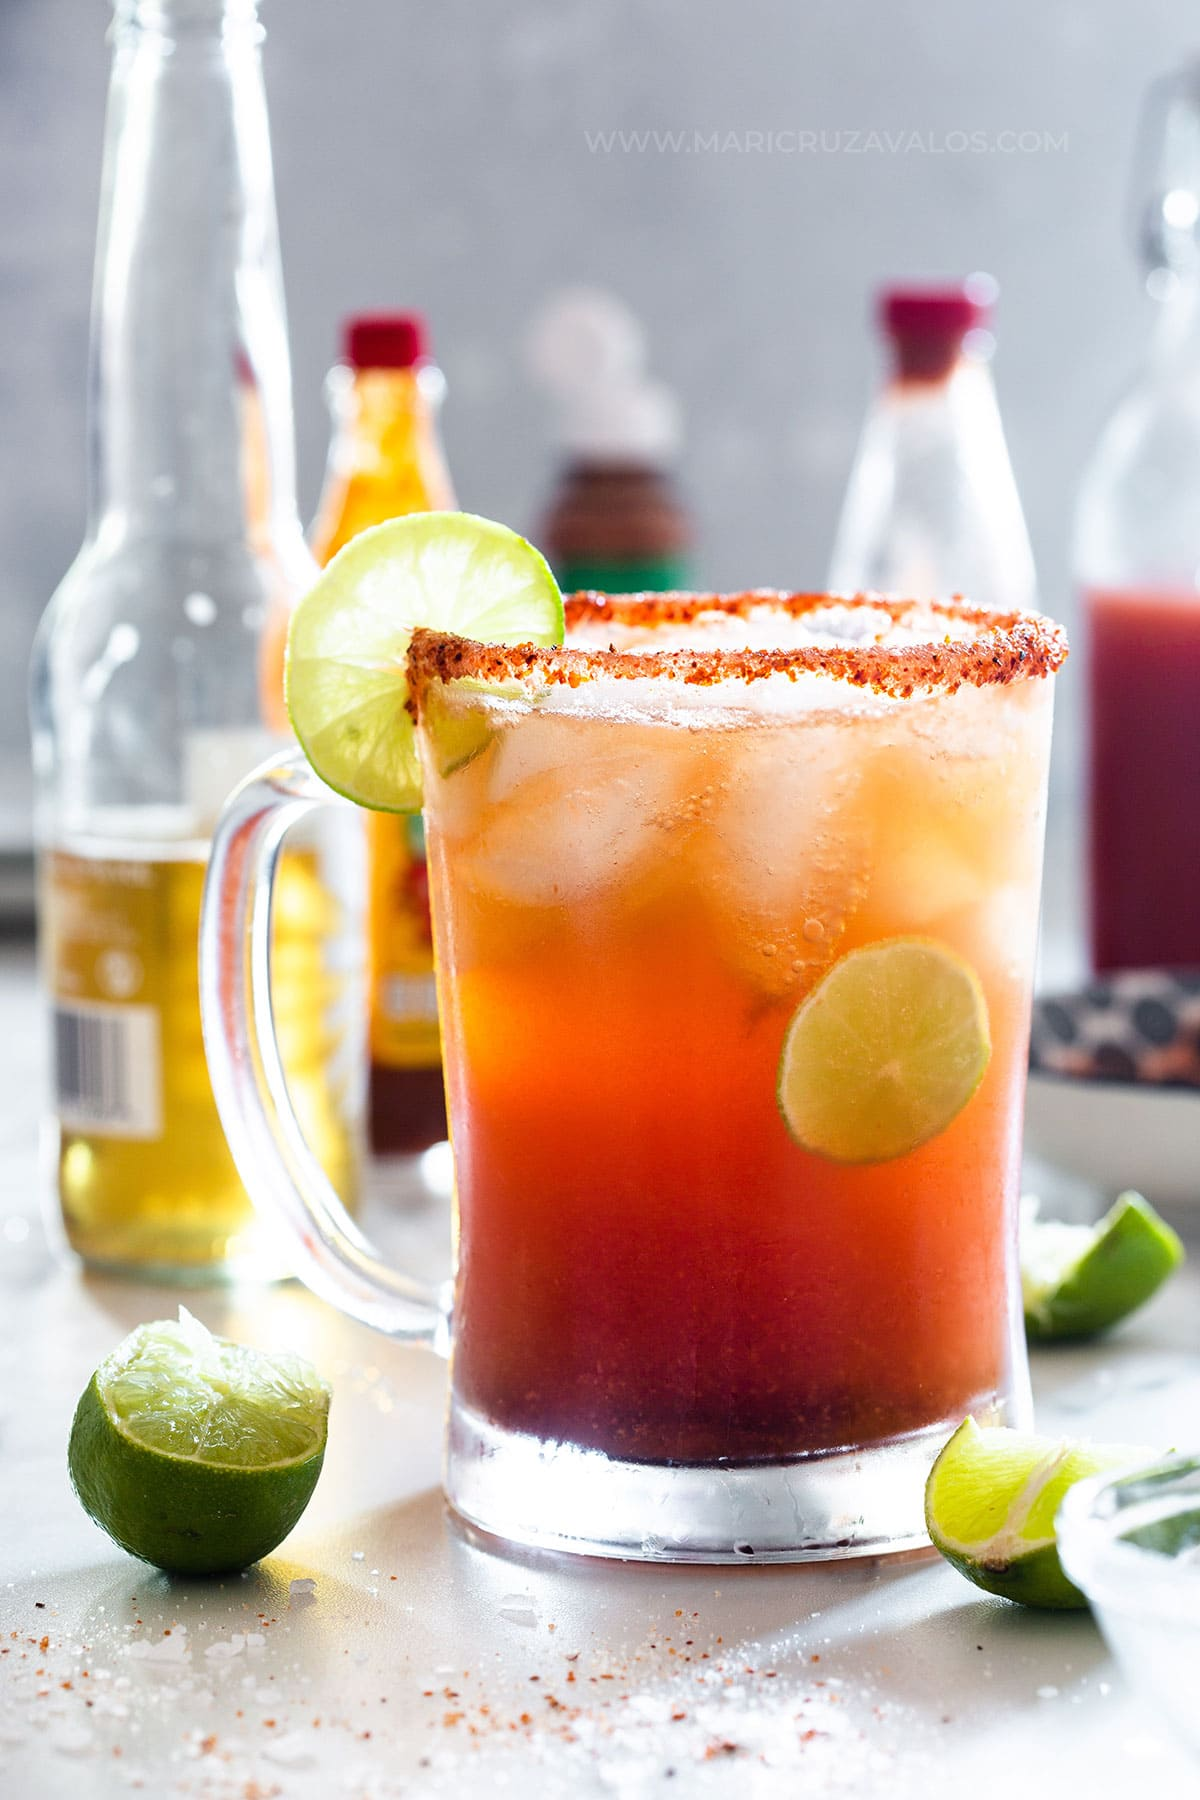 Michelada served on a cold glass garnished with lime slices.